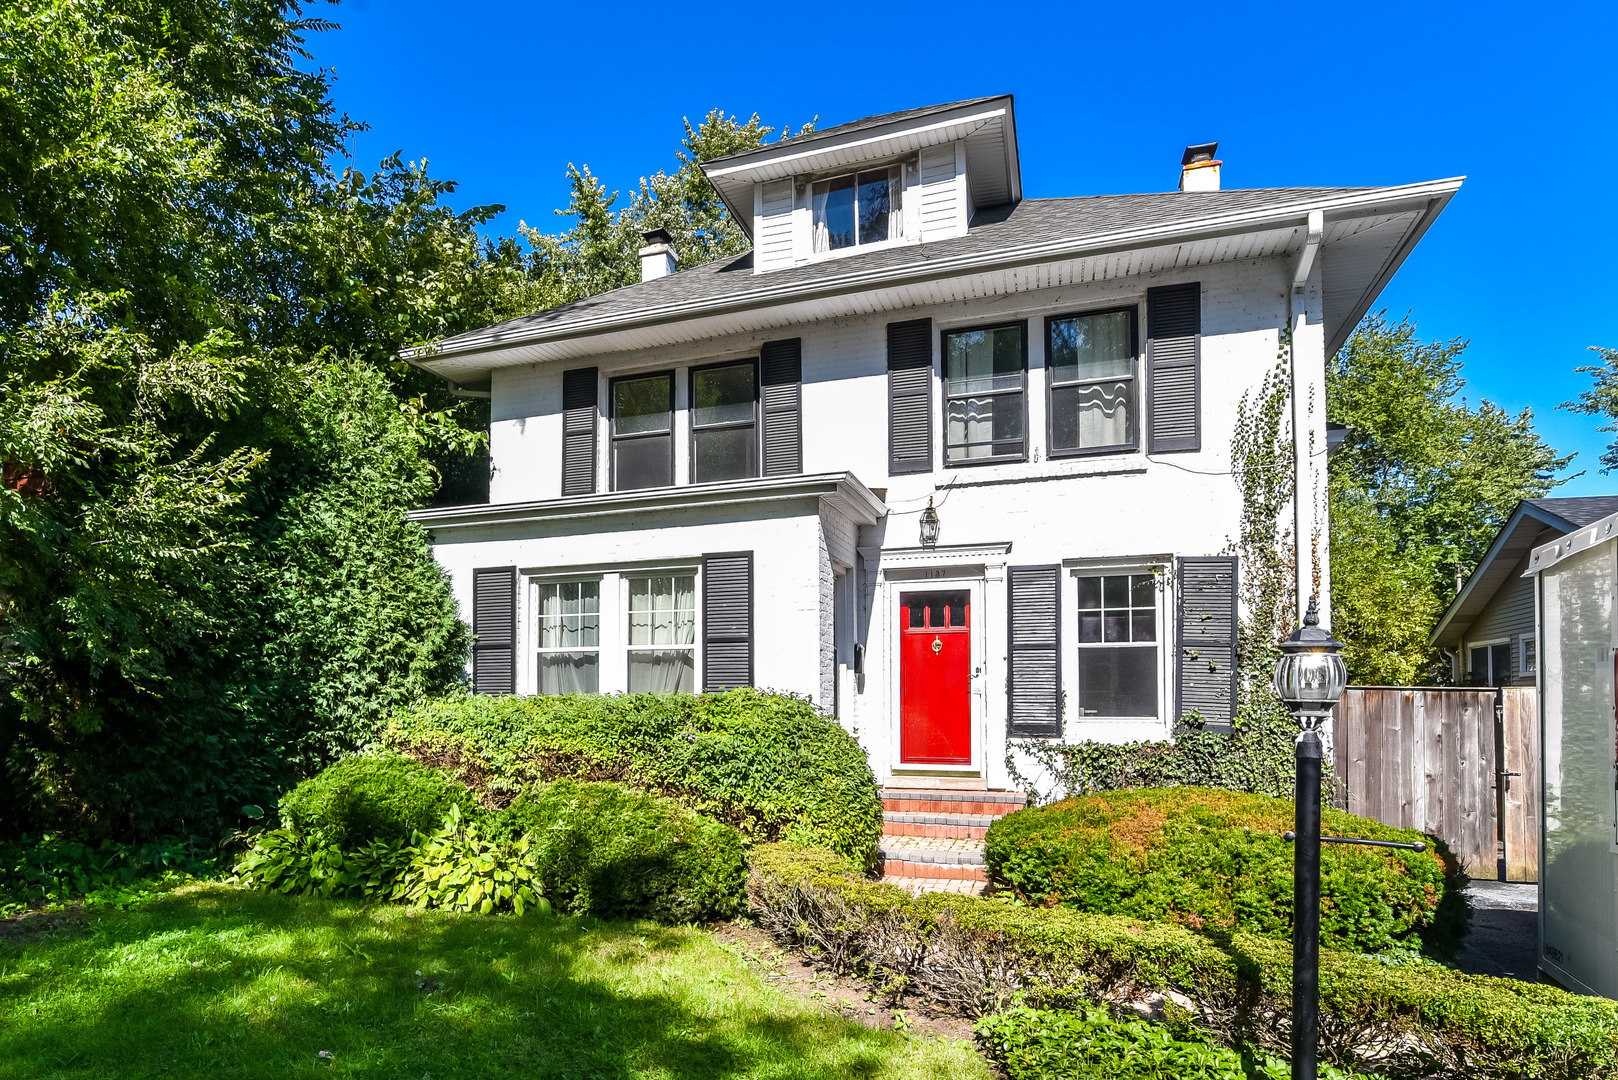 1137 Willow Road, Winnetka in Cook County, IL 60093 Home for Sale